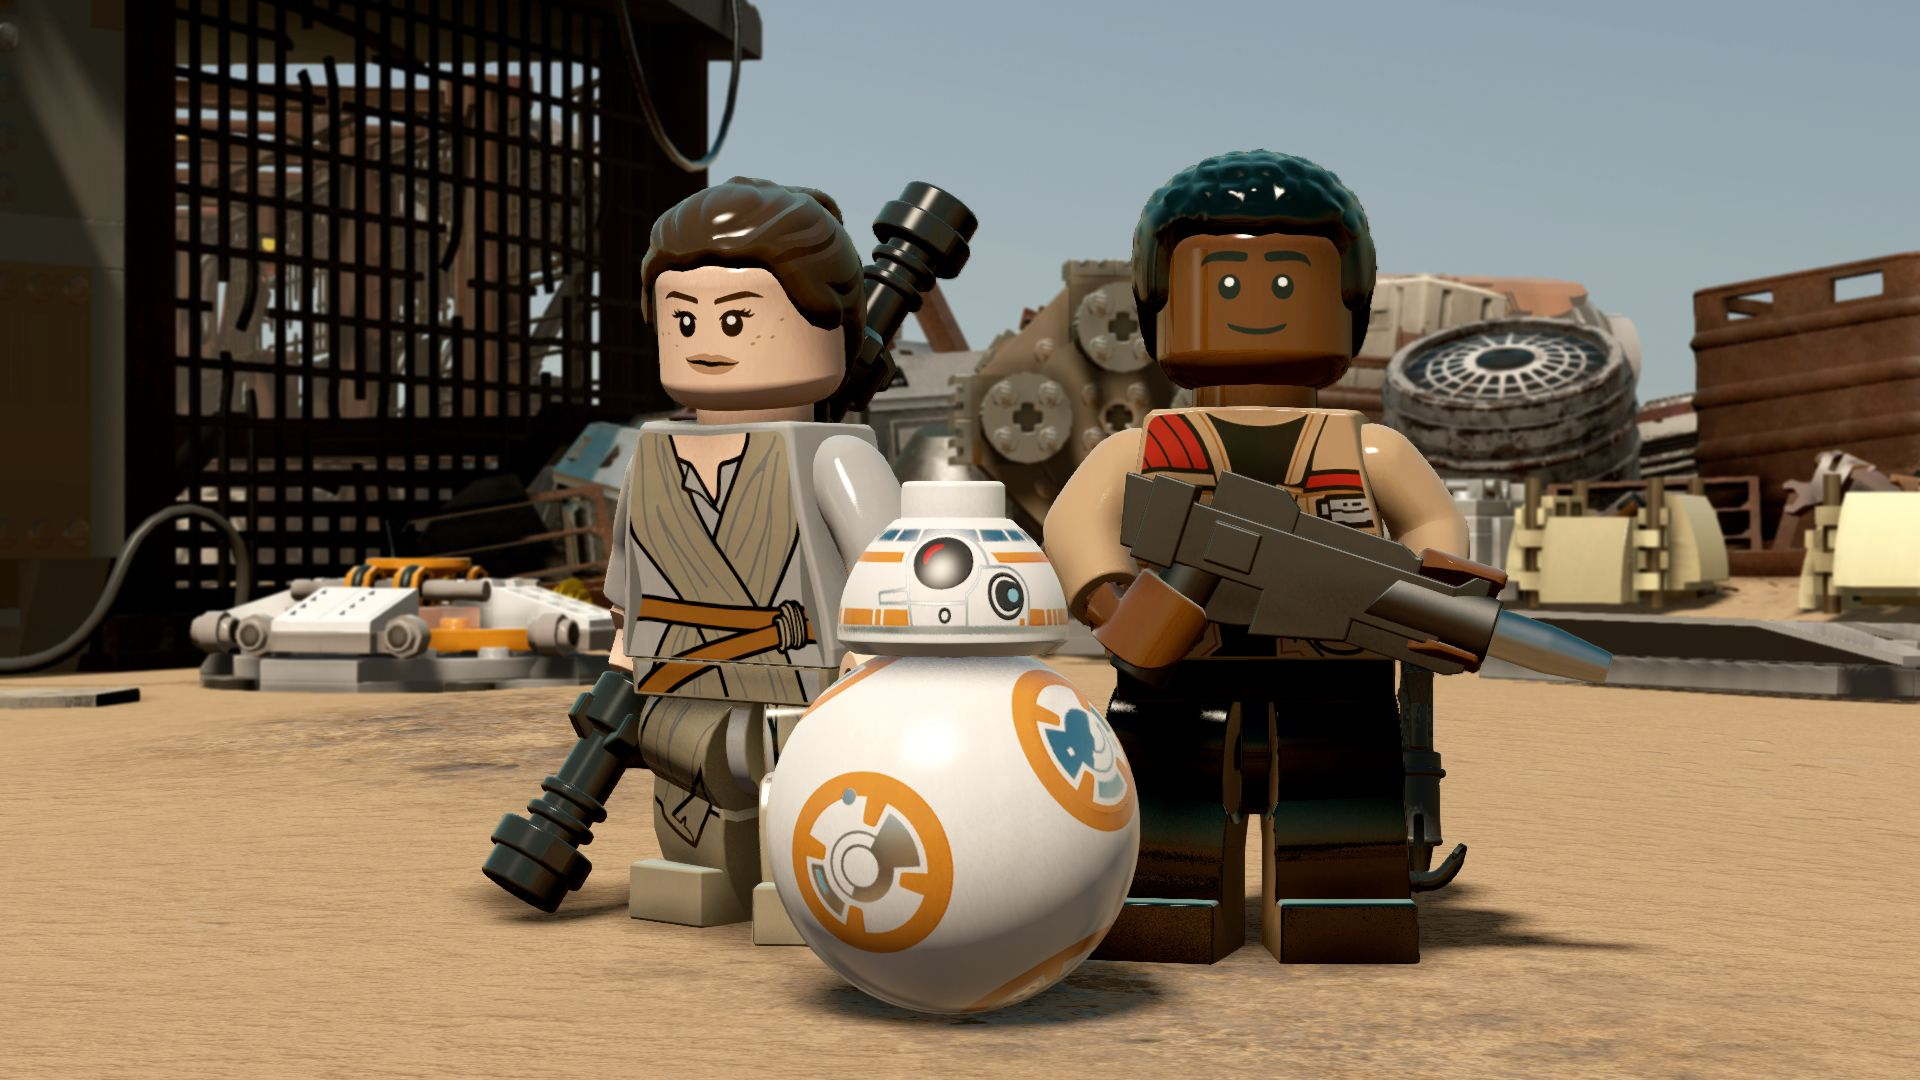 LEGO Star Wars The Force Awakens - VGPRofessional Review (1)